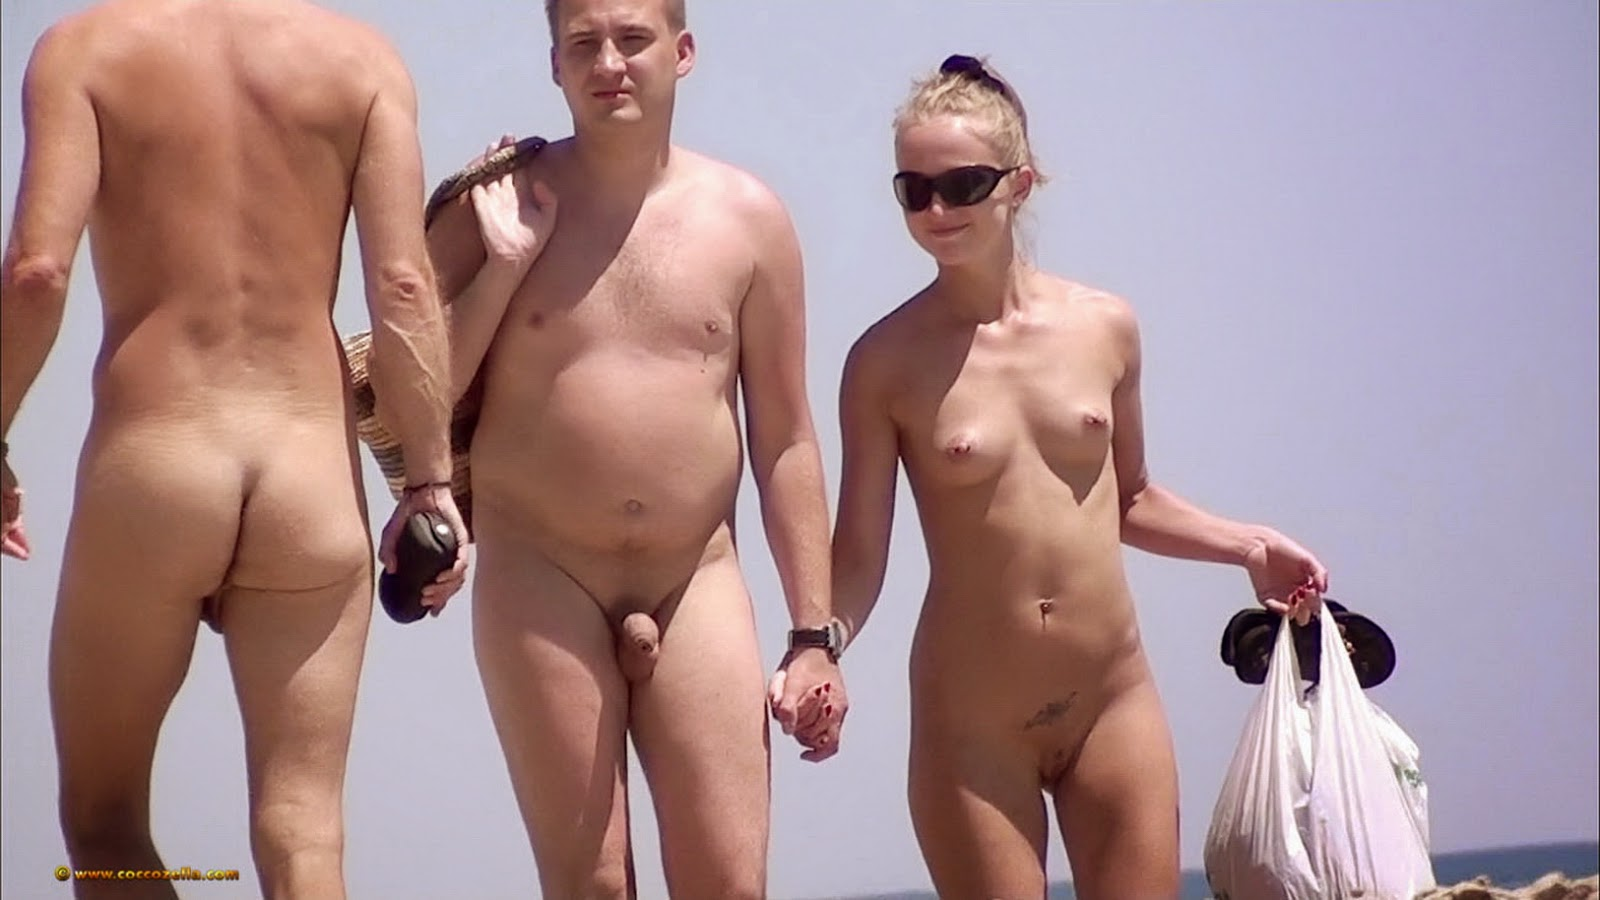 Family nudists hot, wow!!!